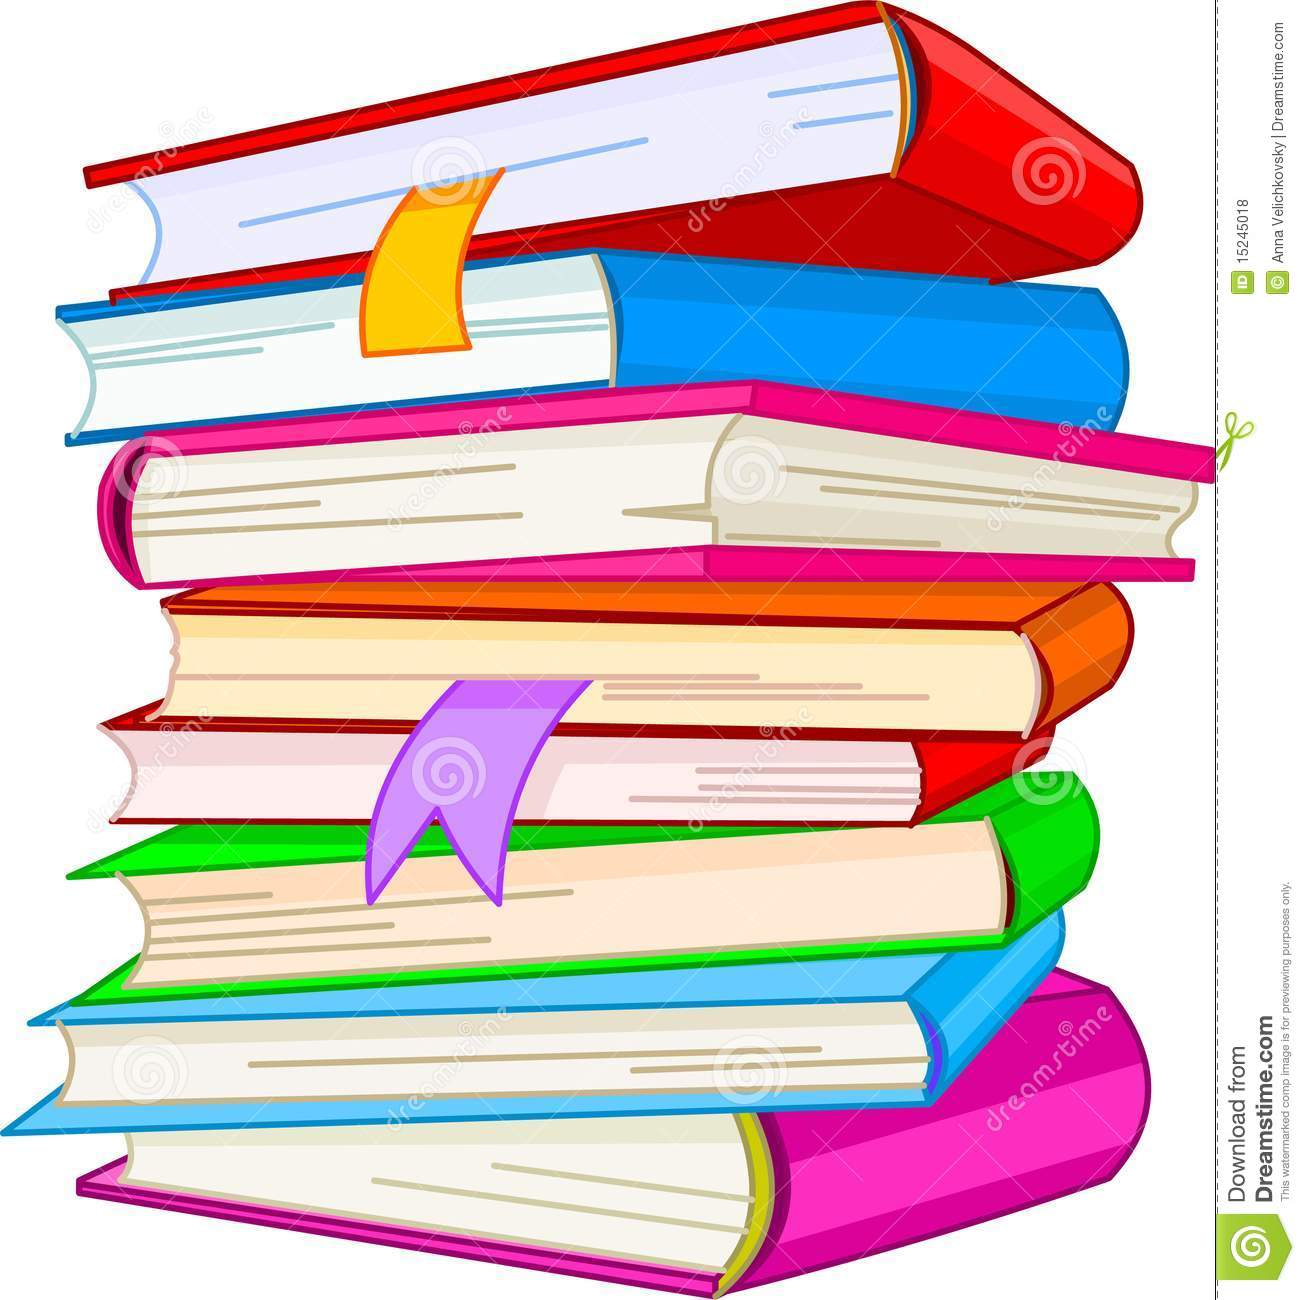 Book stacks clipart.